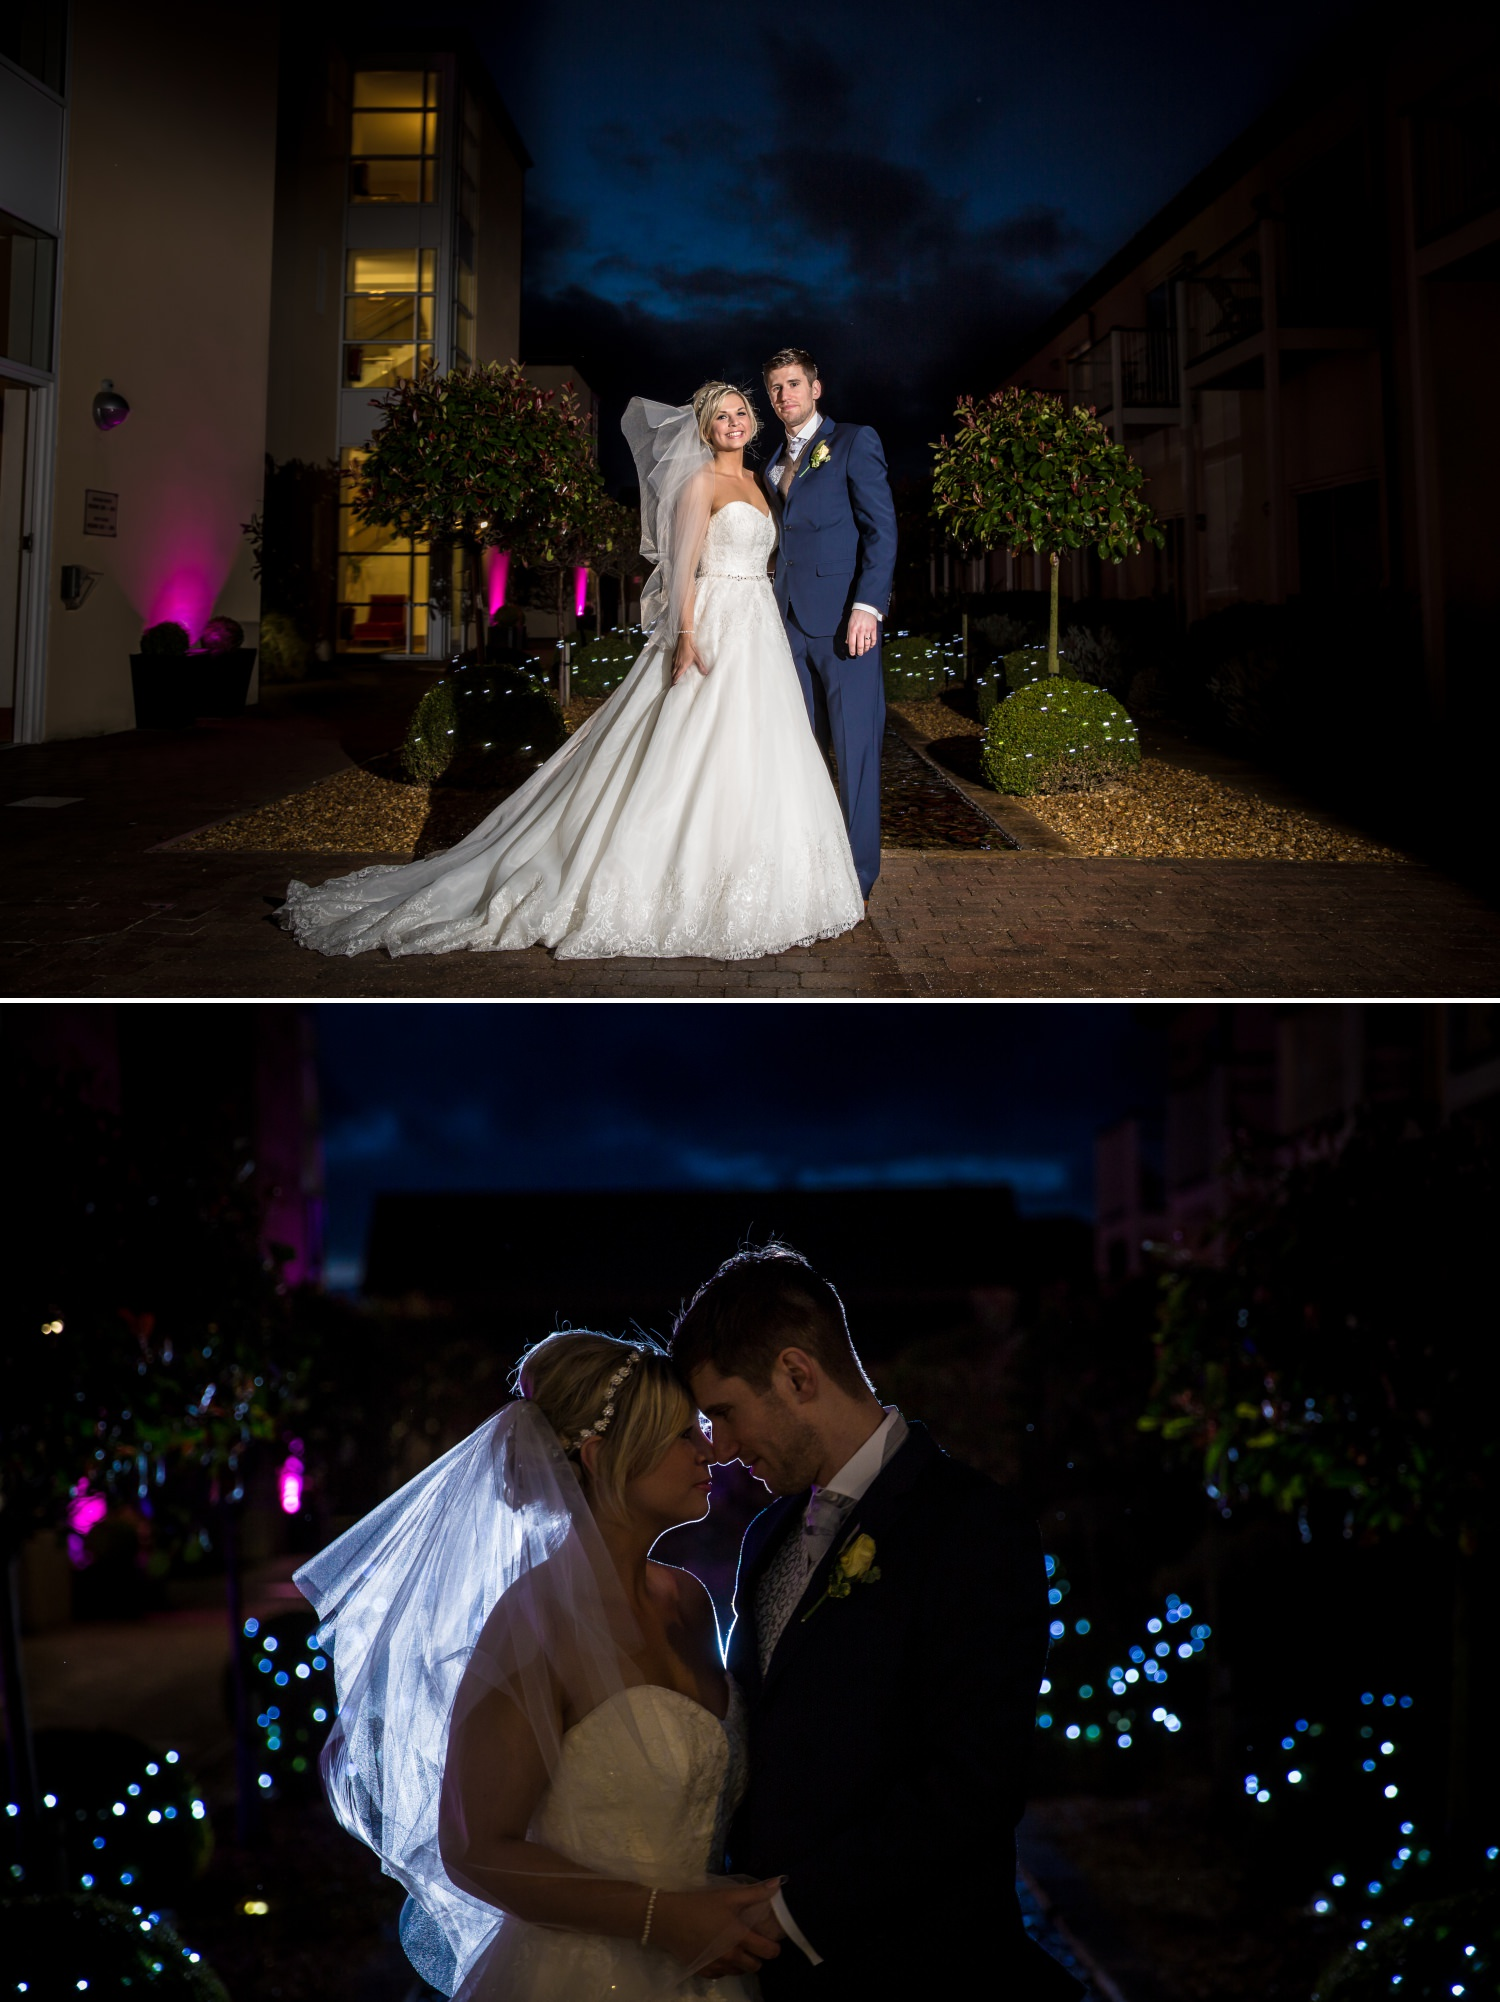 Wedding photography portrait at Quay Hotel, North Wales